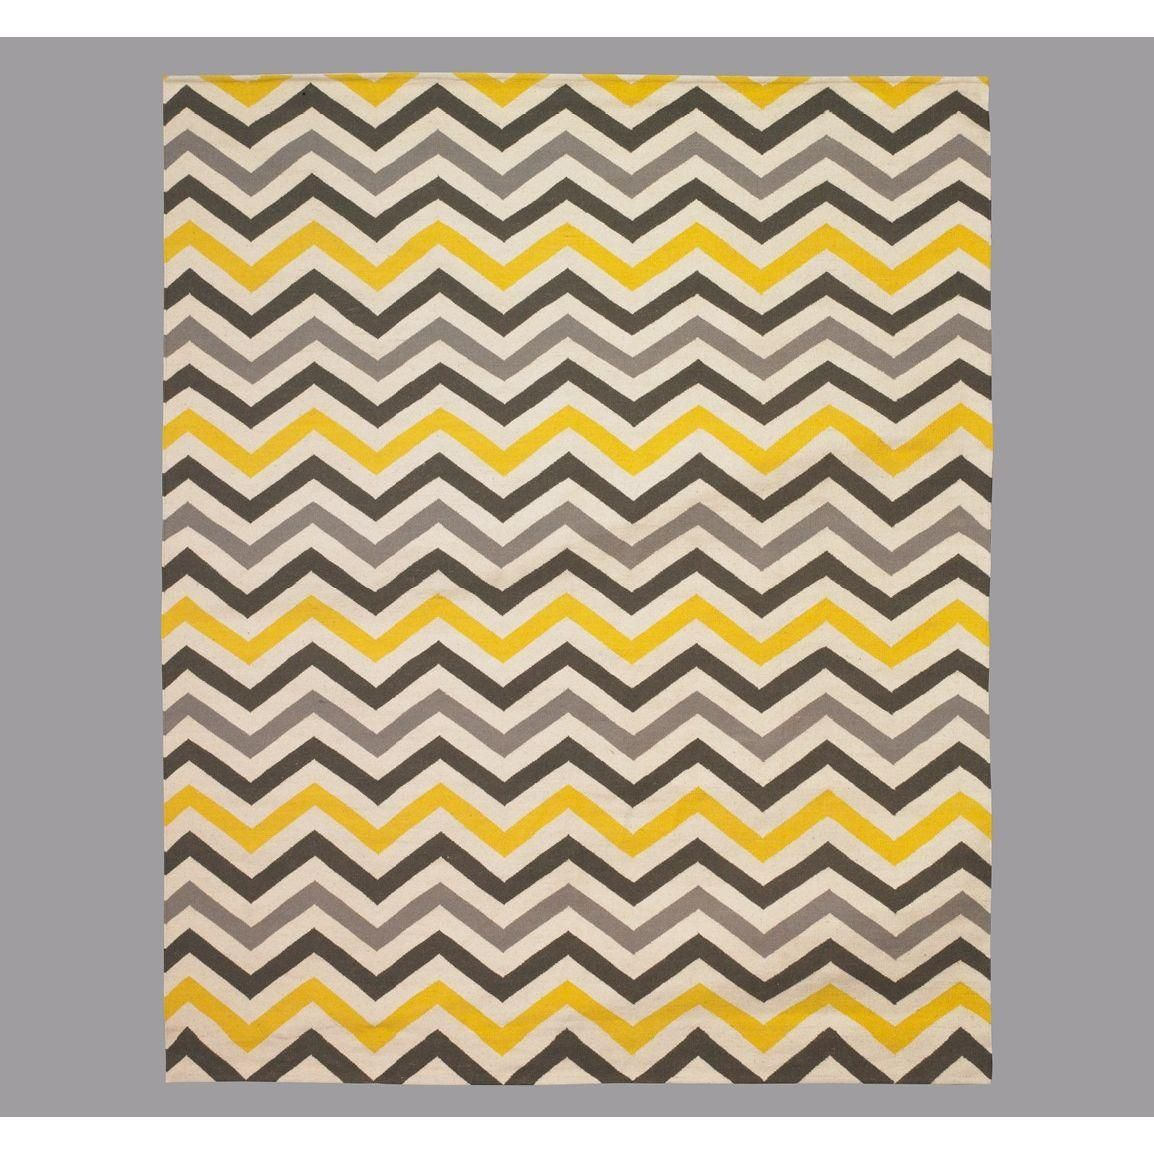 Decor For Your Floor Our Graphic Yet Simple Flat Woven Rugs Are